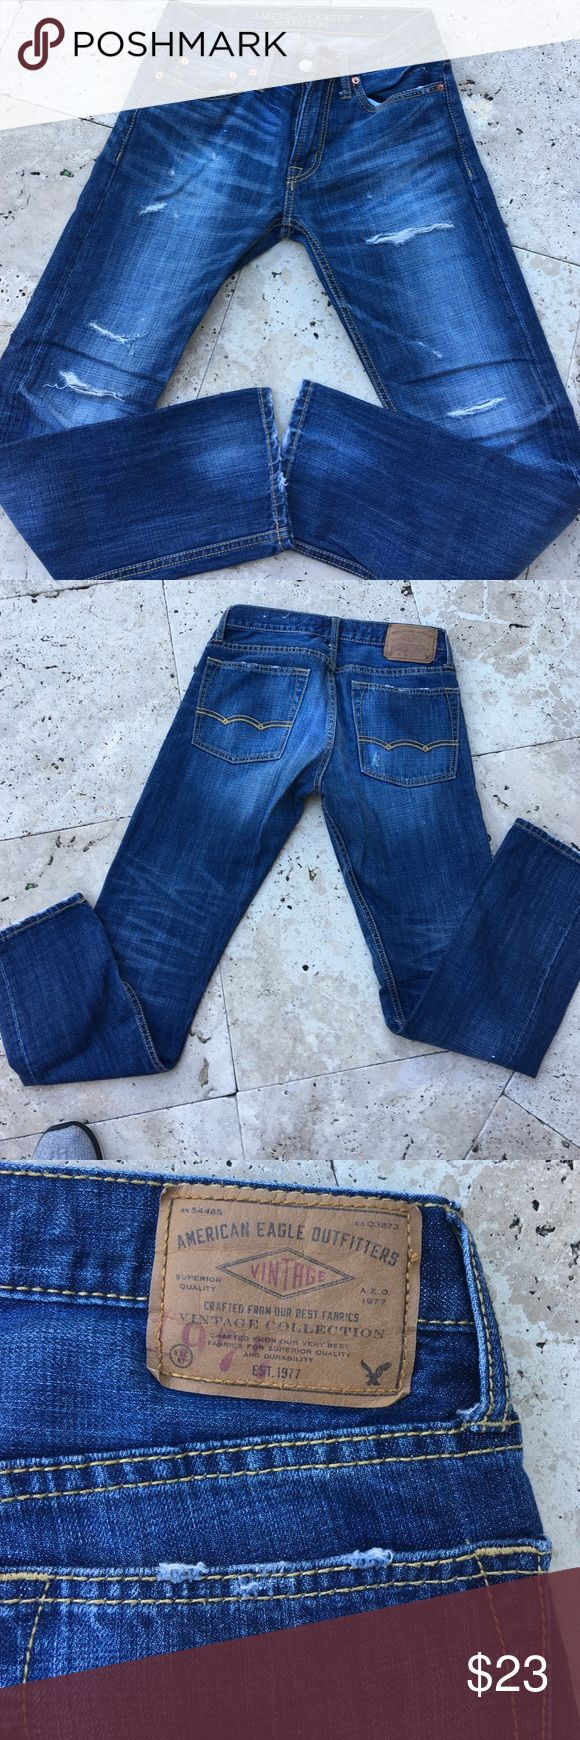 Men's American eagle Jean Men's American eagle distressed Jean.  Never worn but no tags. American Eagle Outfitters Jeans Slim